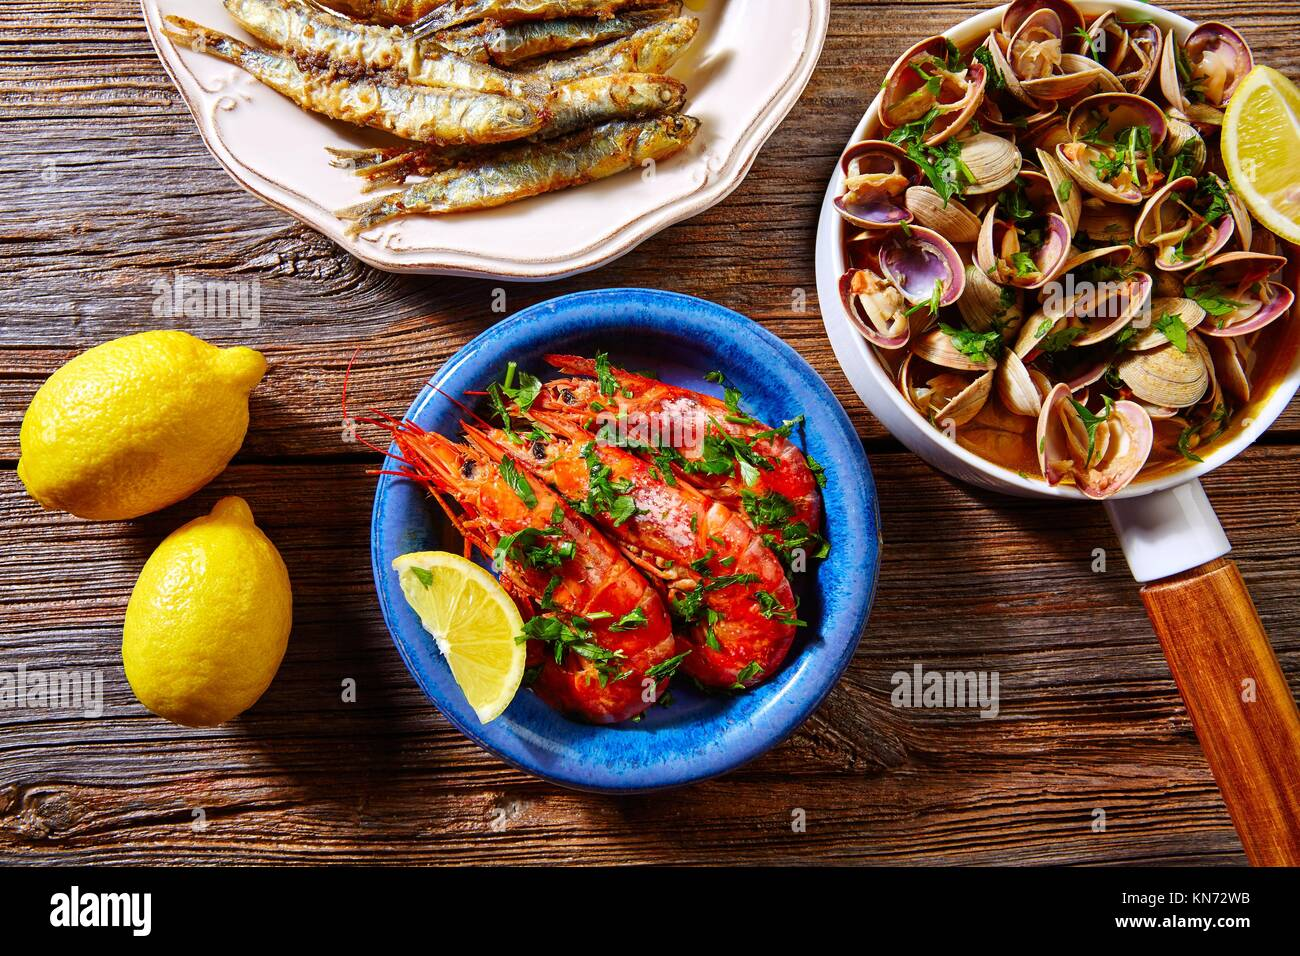 Tapas spanish seafood clams shrimps and fried anchovies fish. Stock Photo